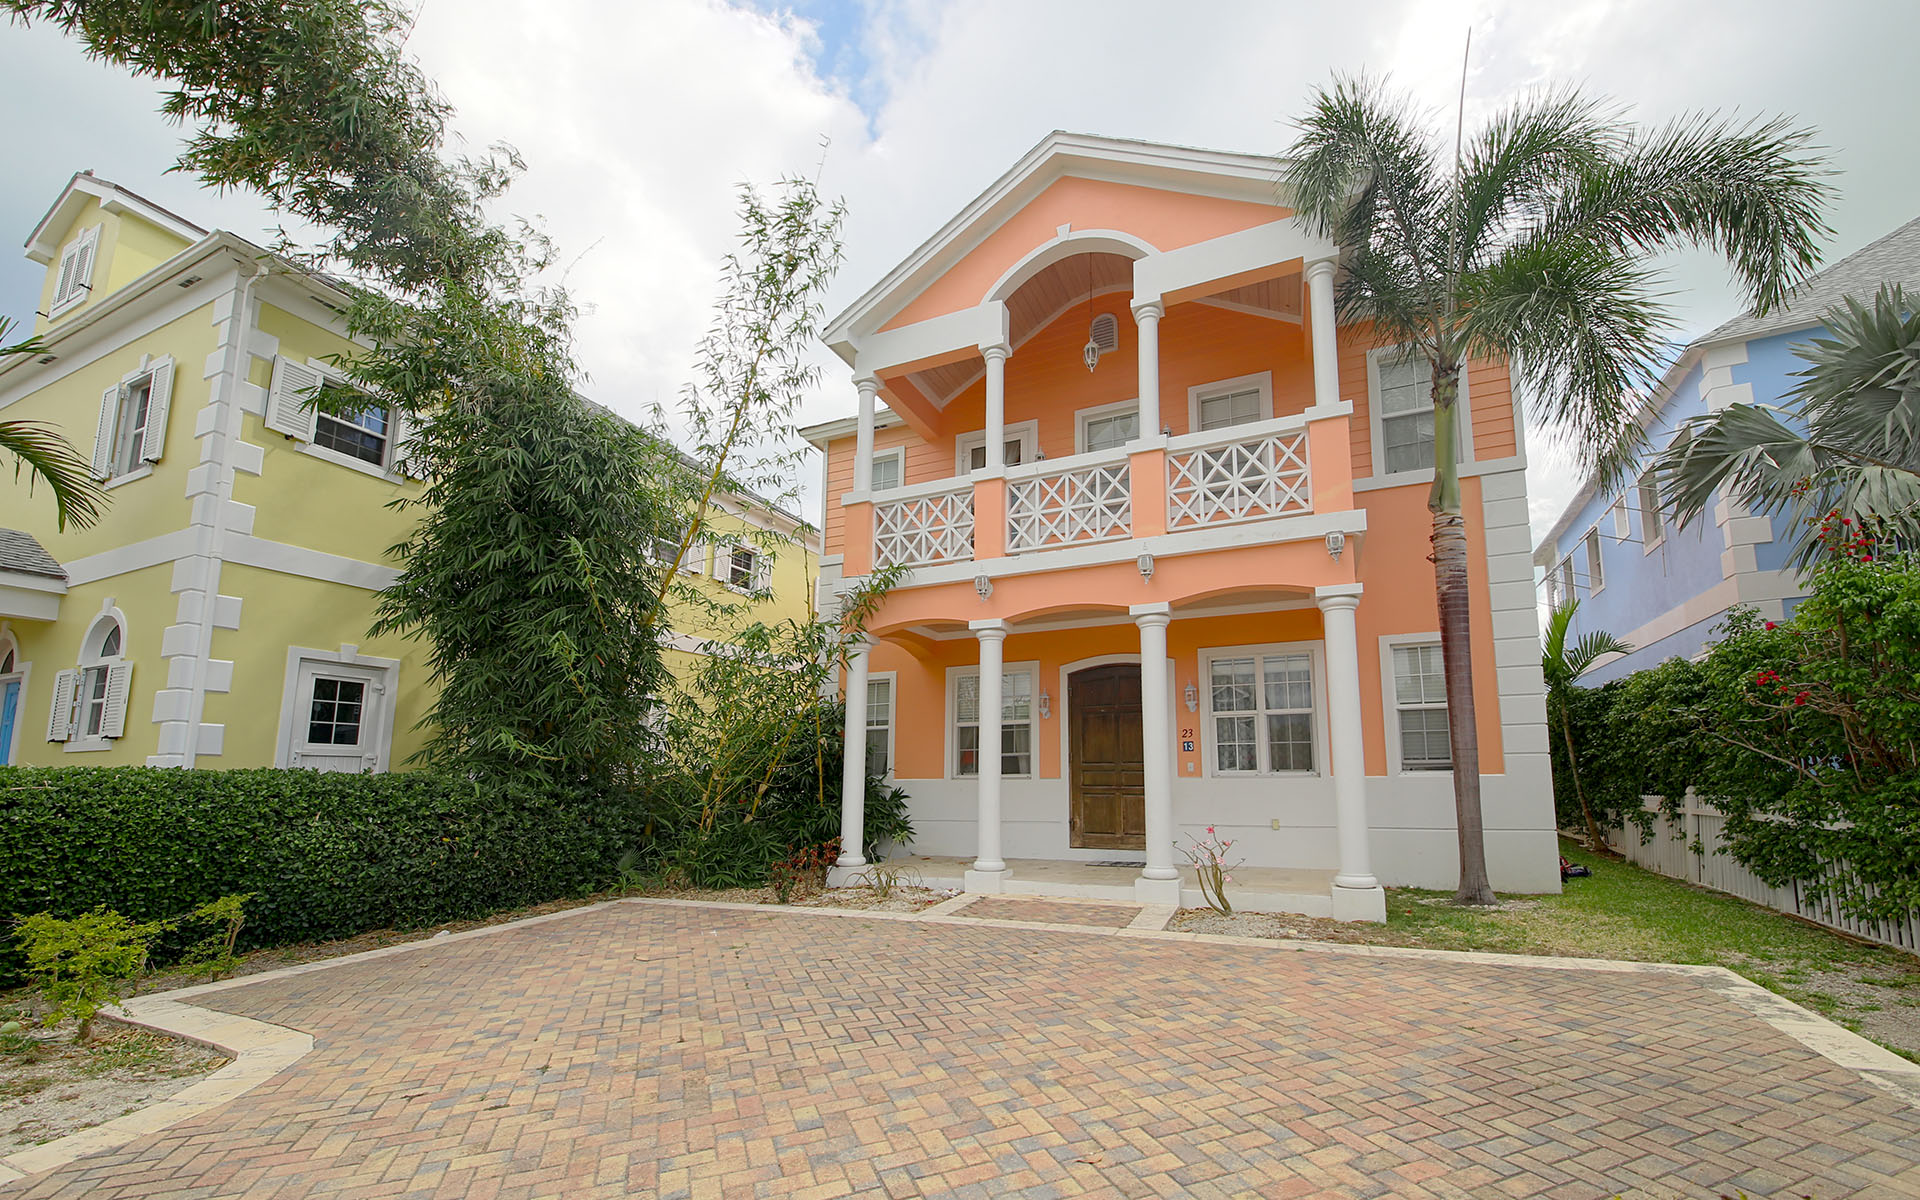 Maison unifamiliale pour l Vente à Traditional Colonial Style Home in Sandyport Nassau New Providence And Vicinity